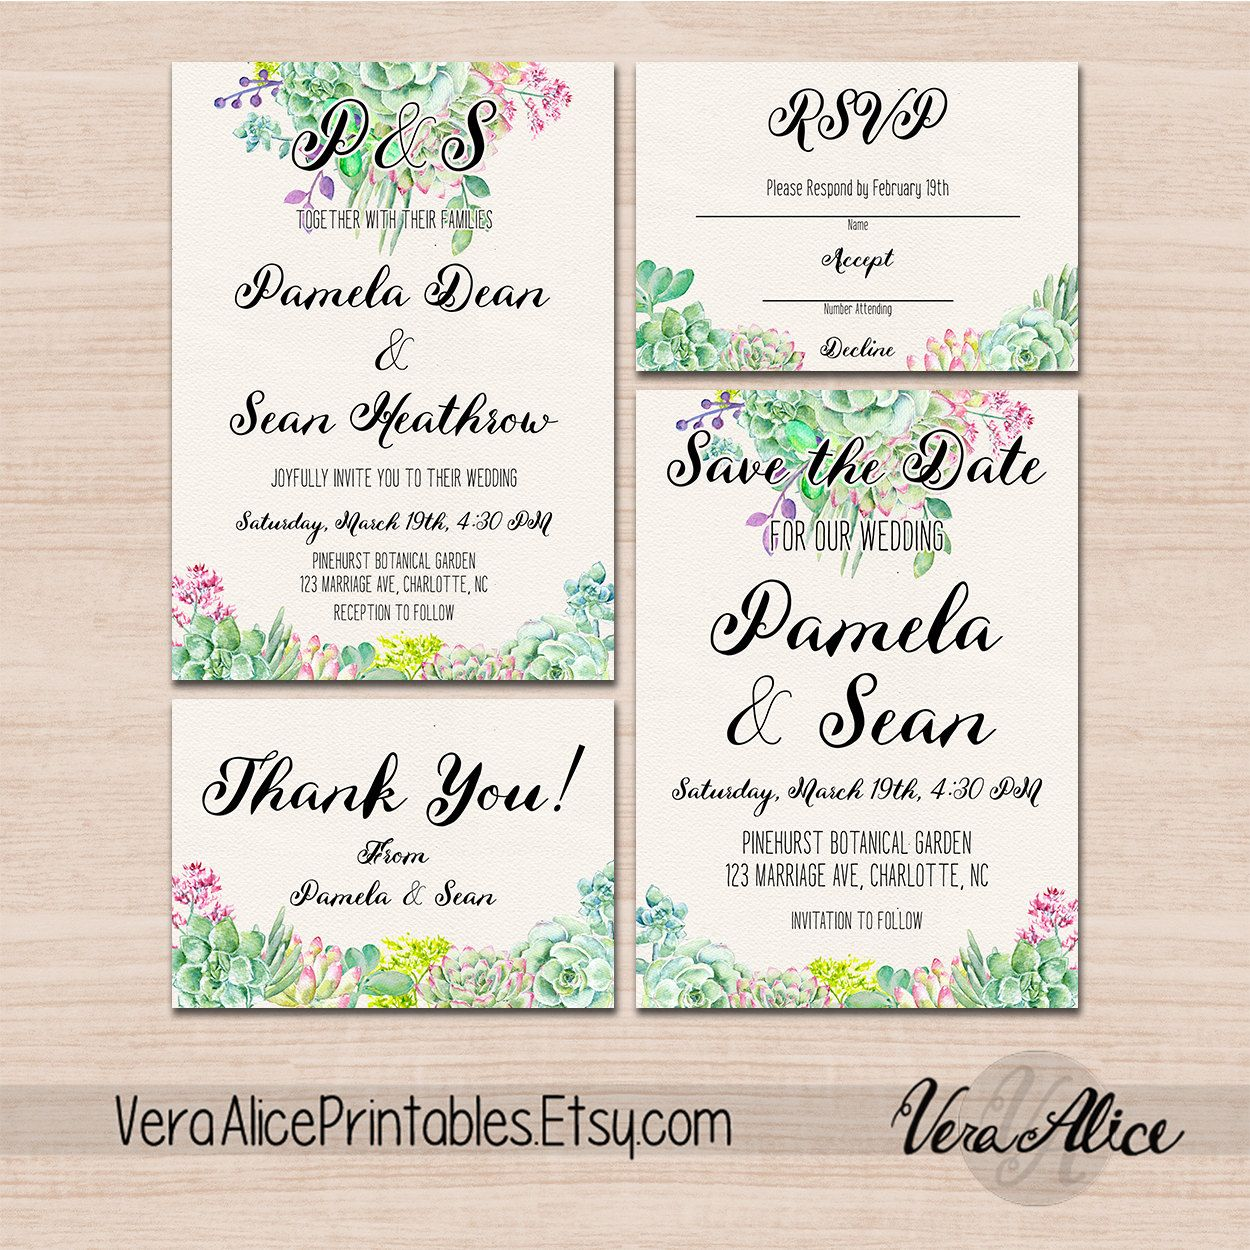 Cactus Wreath Succulent Wedding Invitation Kit Rustic Pink And Greenery Floral Set Suite Wedding Invitation Kits Invitation Kits Succulent Wedding Invitations